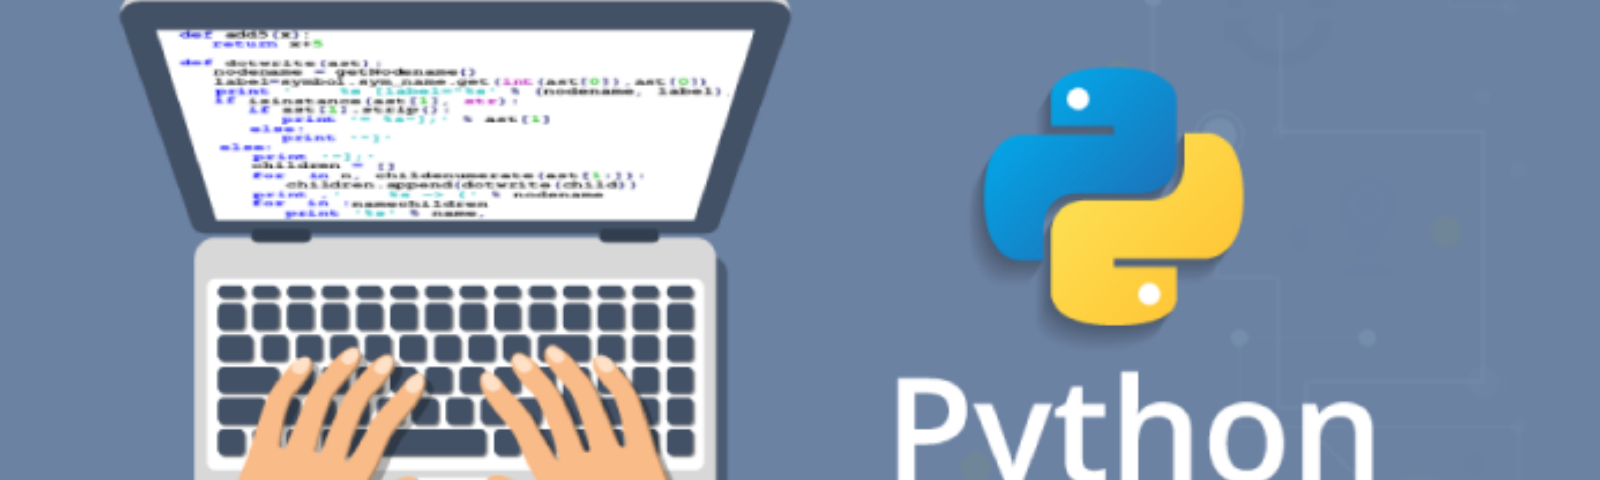 Python Programming Language | Learn Python With Examples